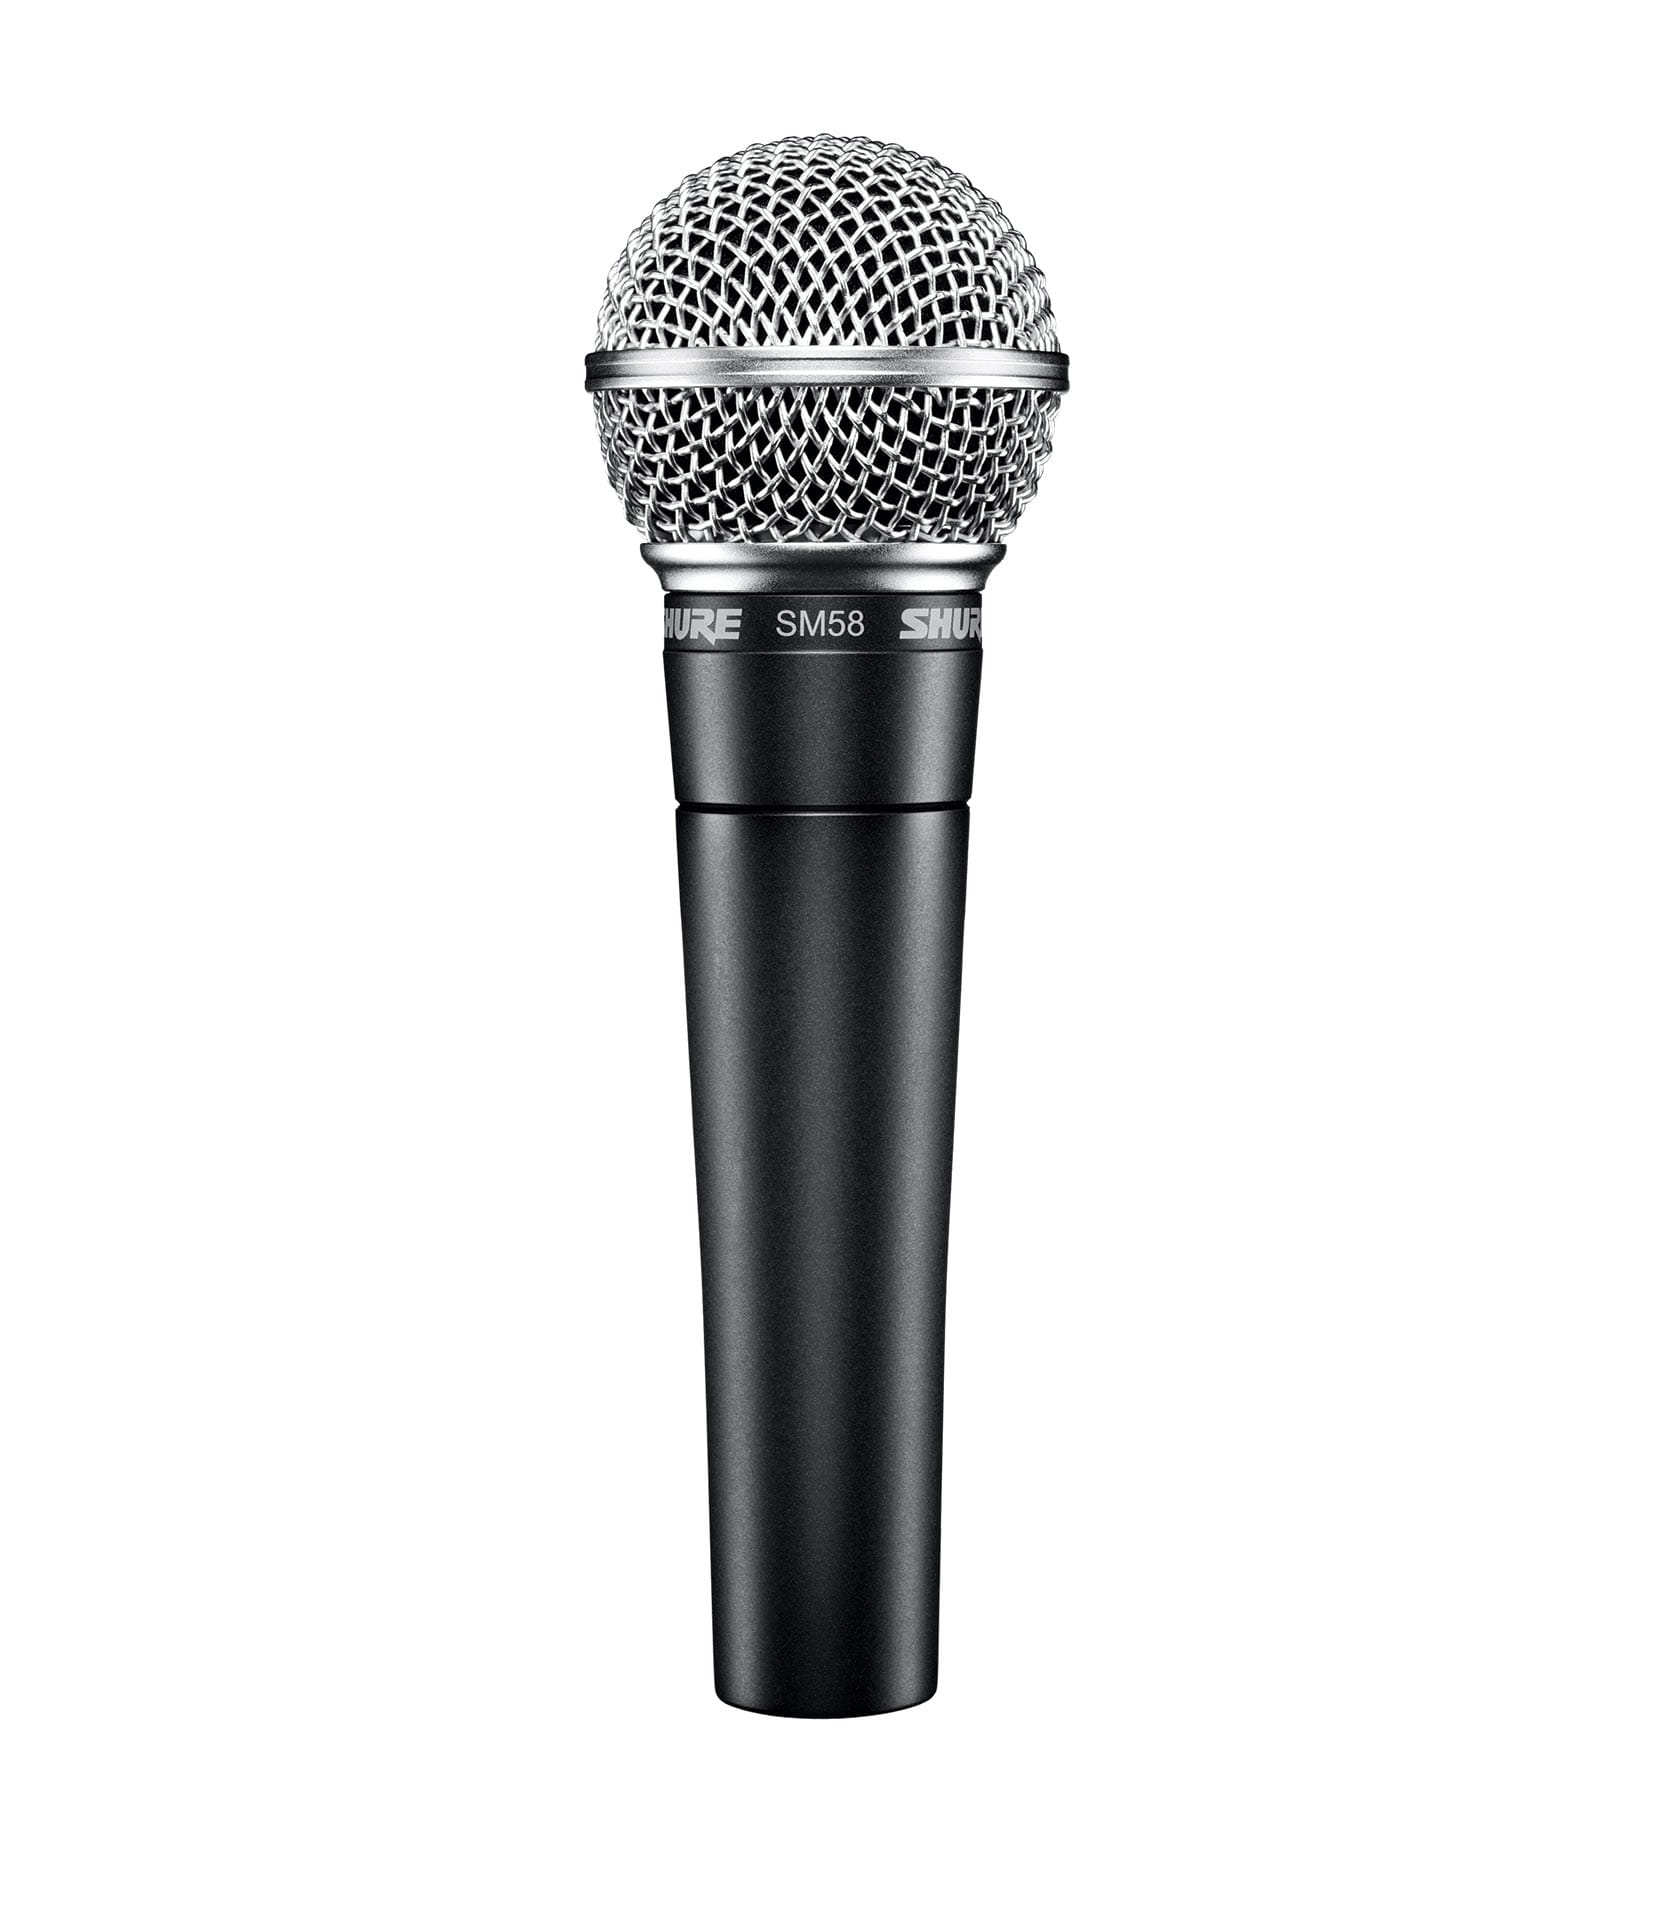 SM58 LCE Industry Standard Microphone